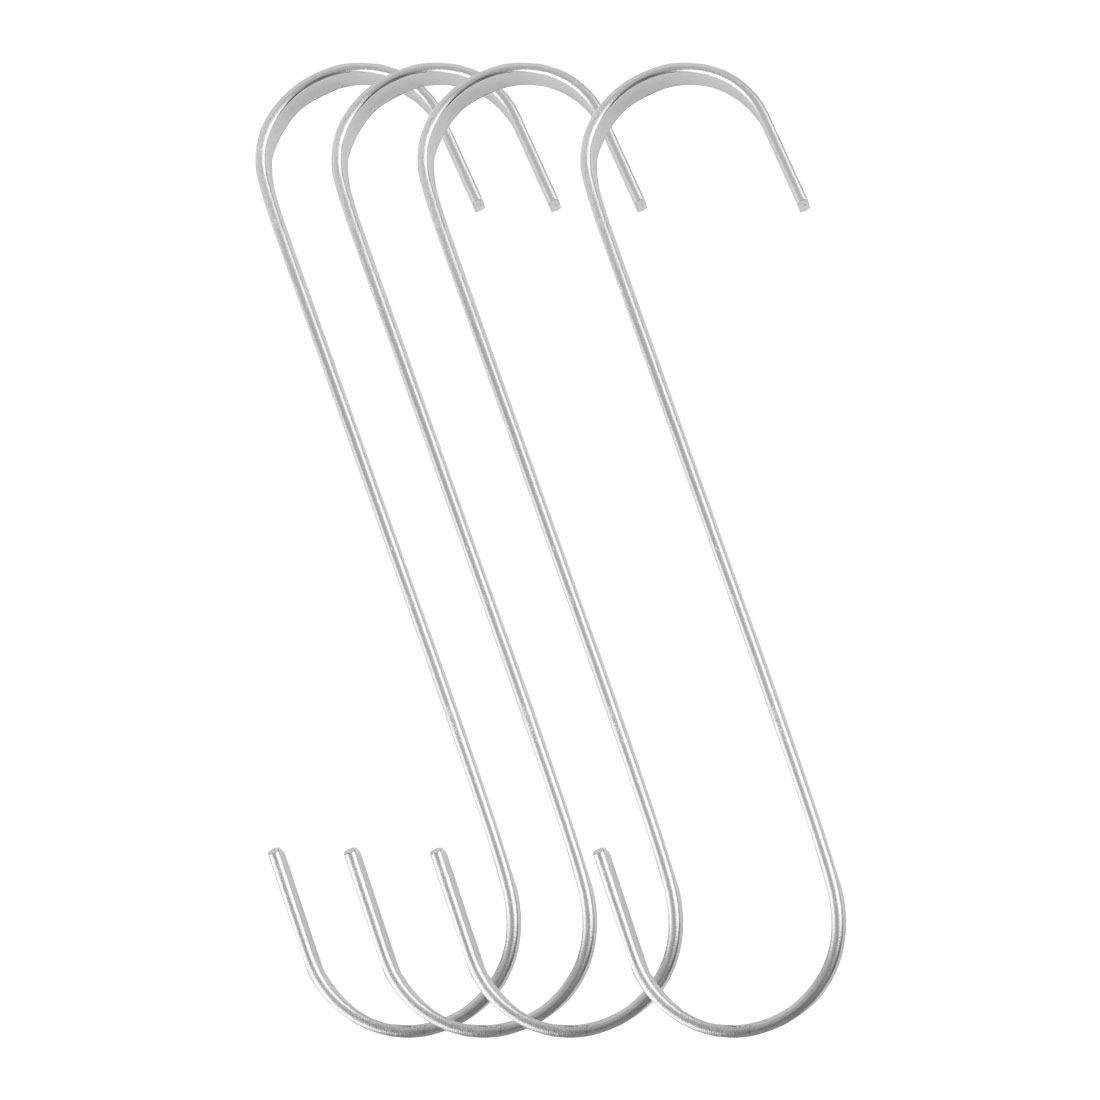 4pcs S Shaped Hook Stainless Steel for Kitchenware Utensil Holder Silver Tone